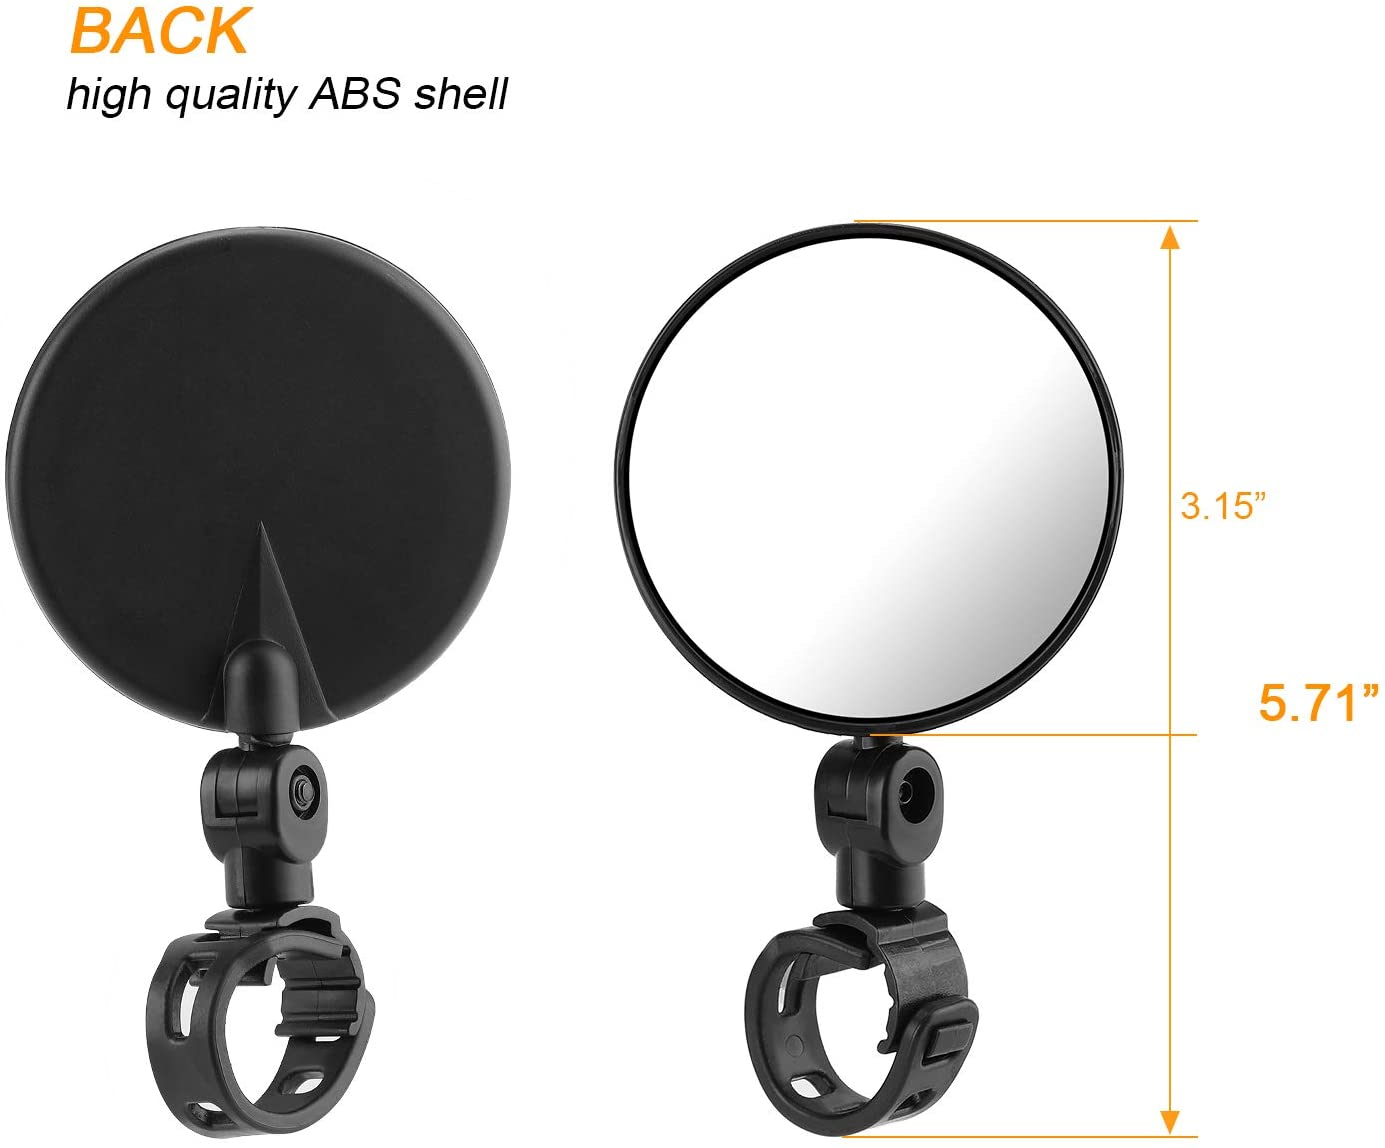 2pcs Bicycle Cycling Rear View Mirrors Adjustable Rotatable Handlebar Mounted Plastic Convex Mirror for Mountain Road Bike TAGVO Bike Mirrors